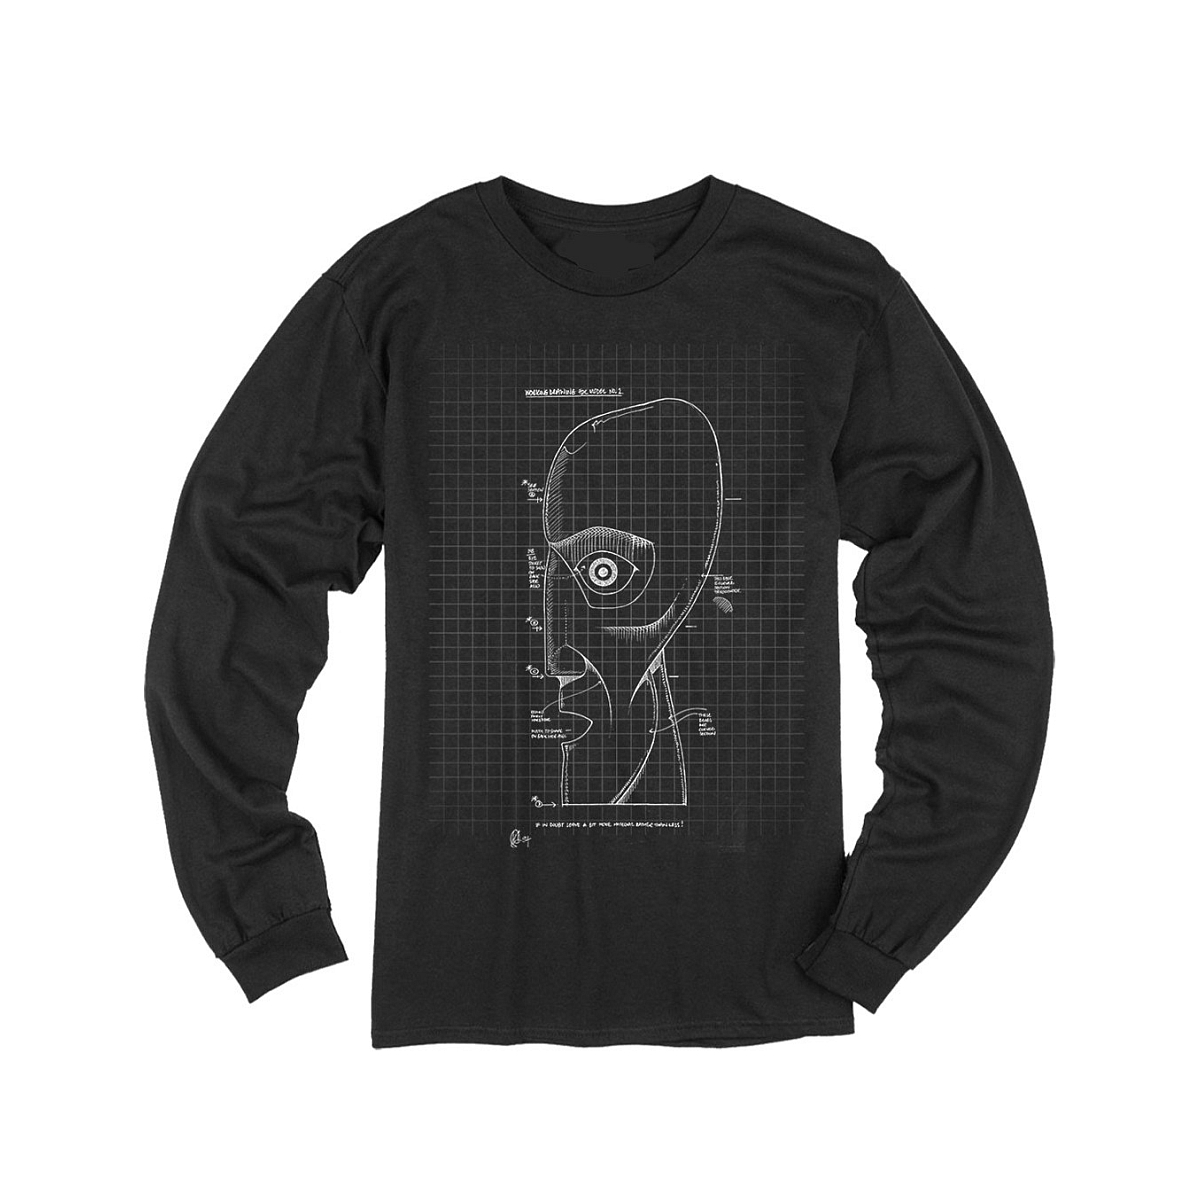 The Later Years Schematics Black Longsleeve T-shirt